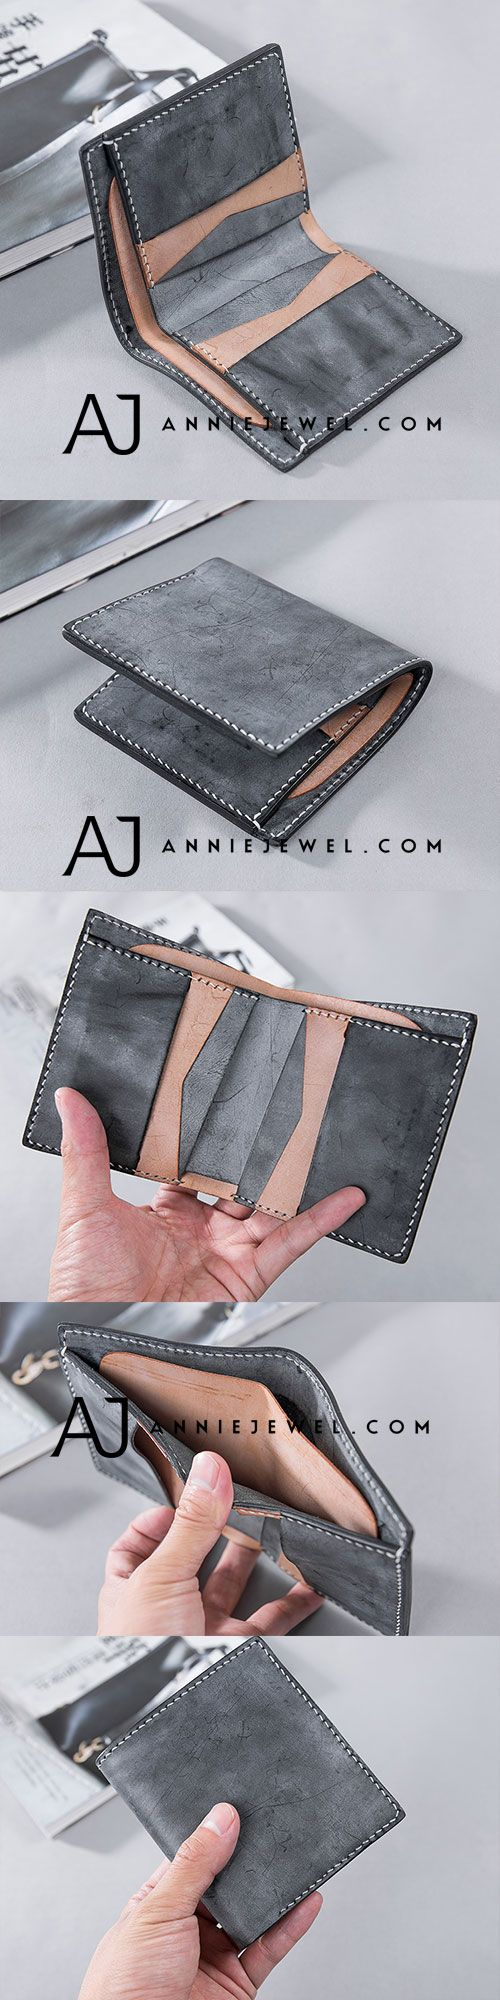 767 Best Men Wallets Images By Michel Stlaurent On Pinterest